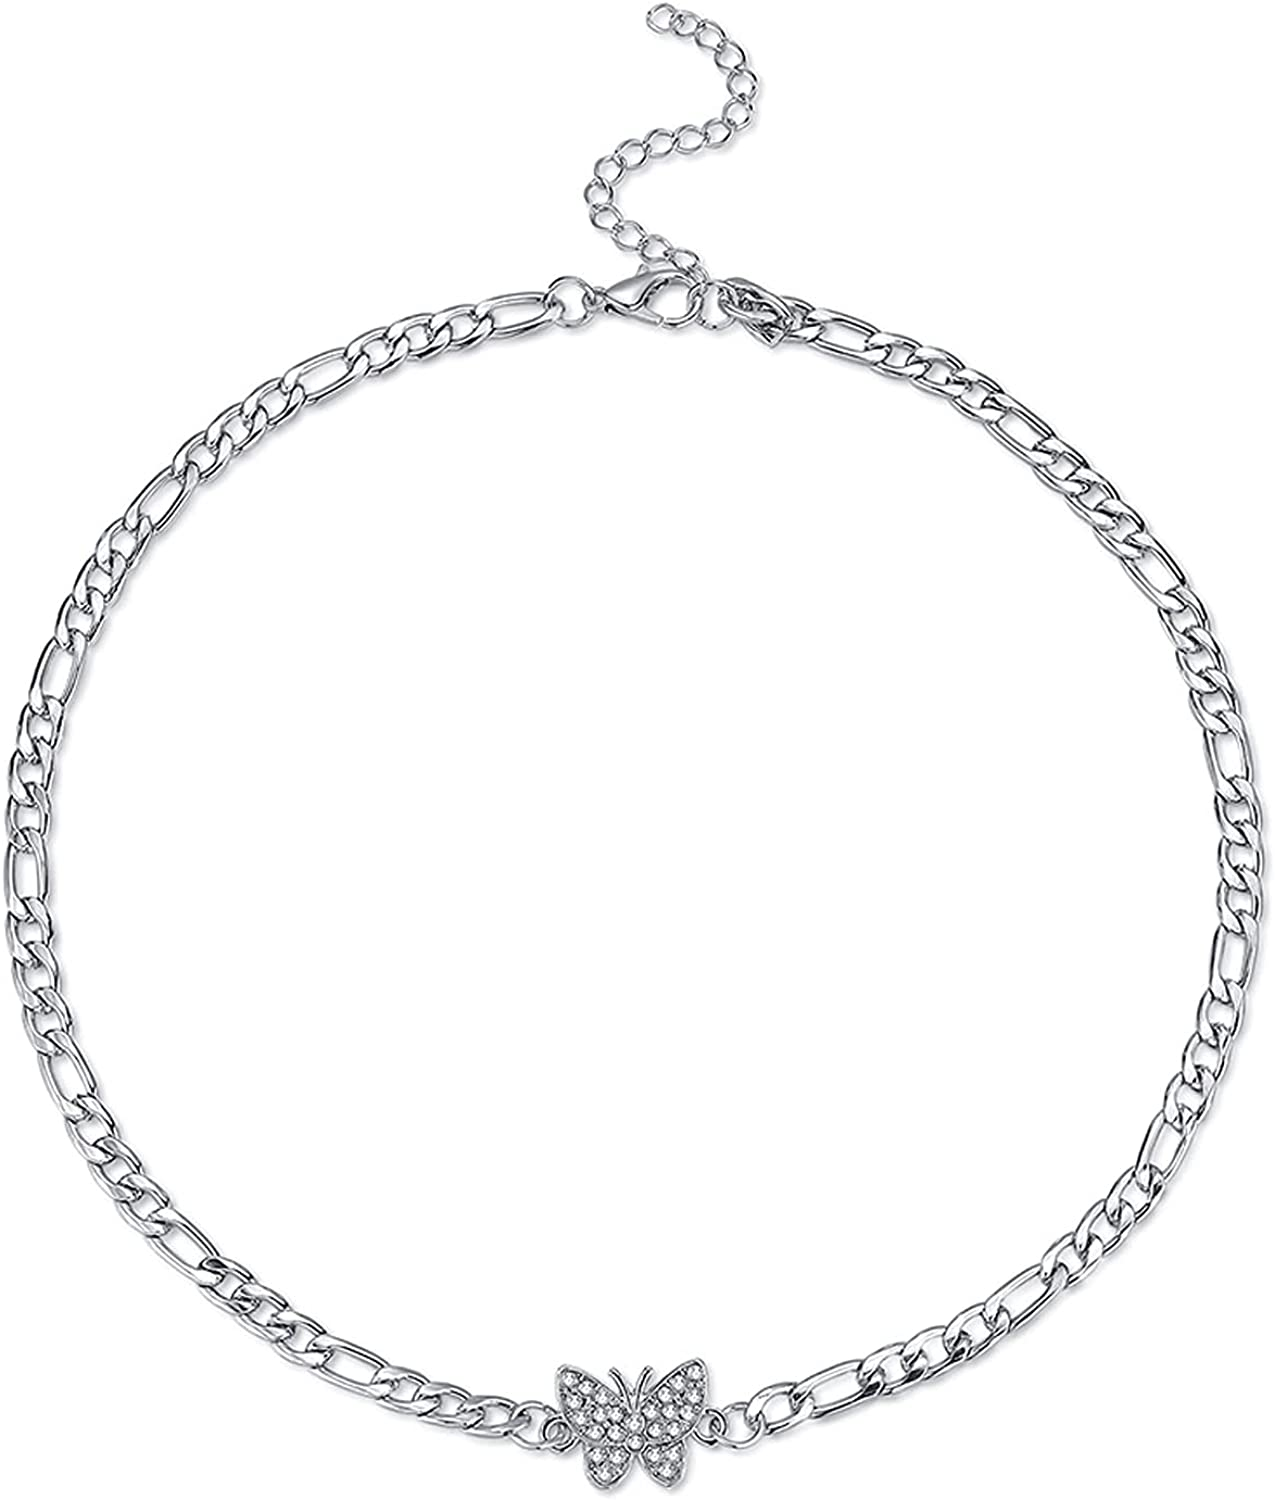 SISMIURRA Butterfly Choker Necklace for Women, 14k White Gold Plated Shining Rhinestone Tennis Cuban Adjustable Chain Necklaces Delicate Jewelry Gifts